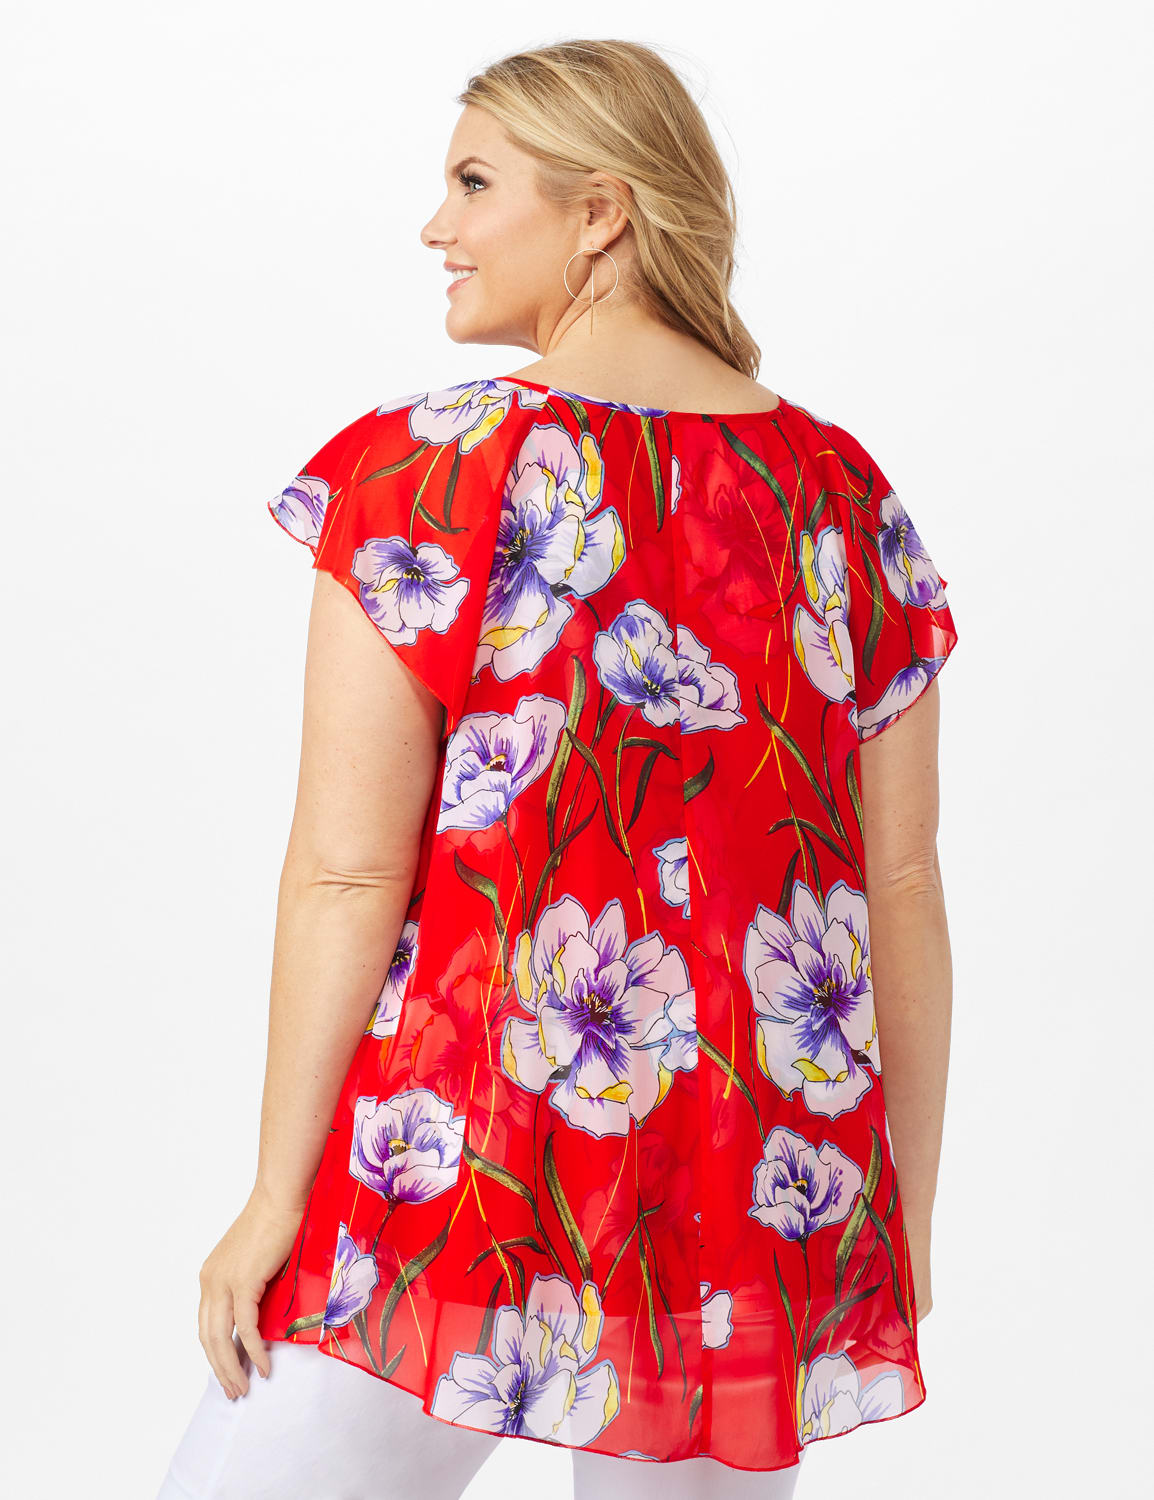 Floral Fly Away Top - Red - Back